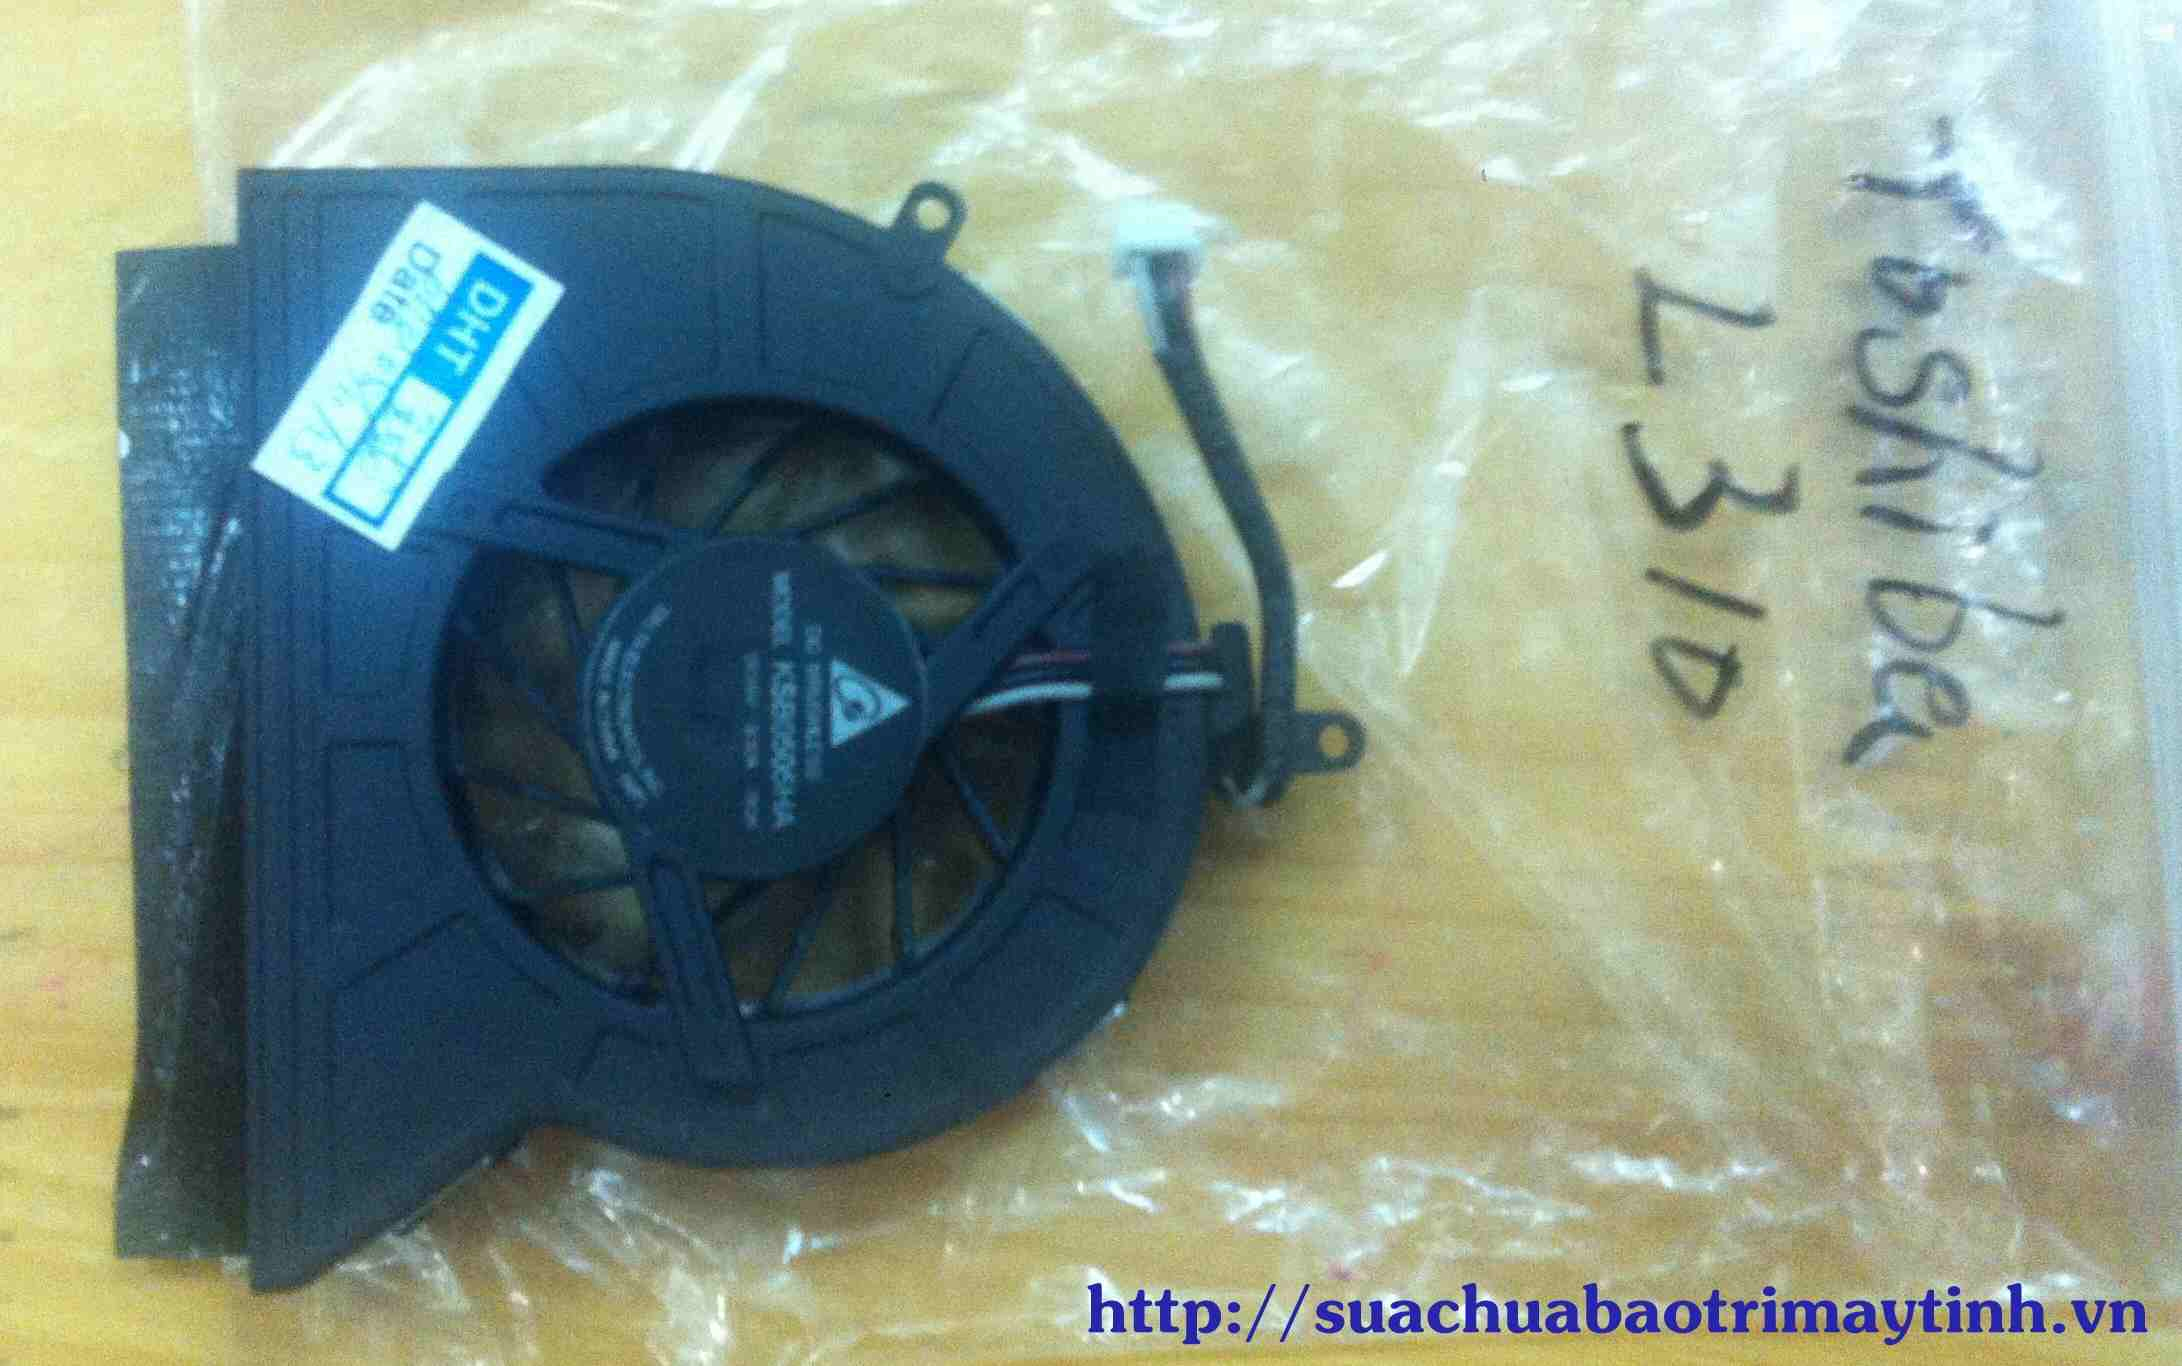 Fan tan nhiet toshiba L310.JPG